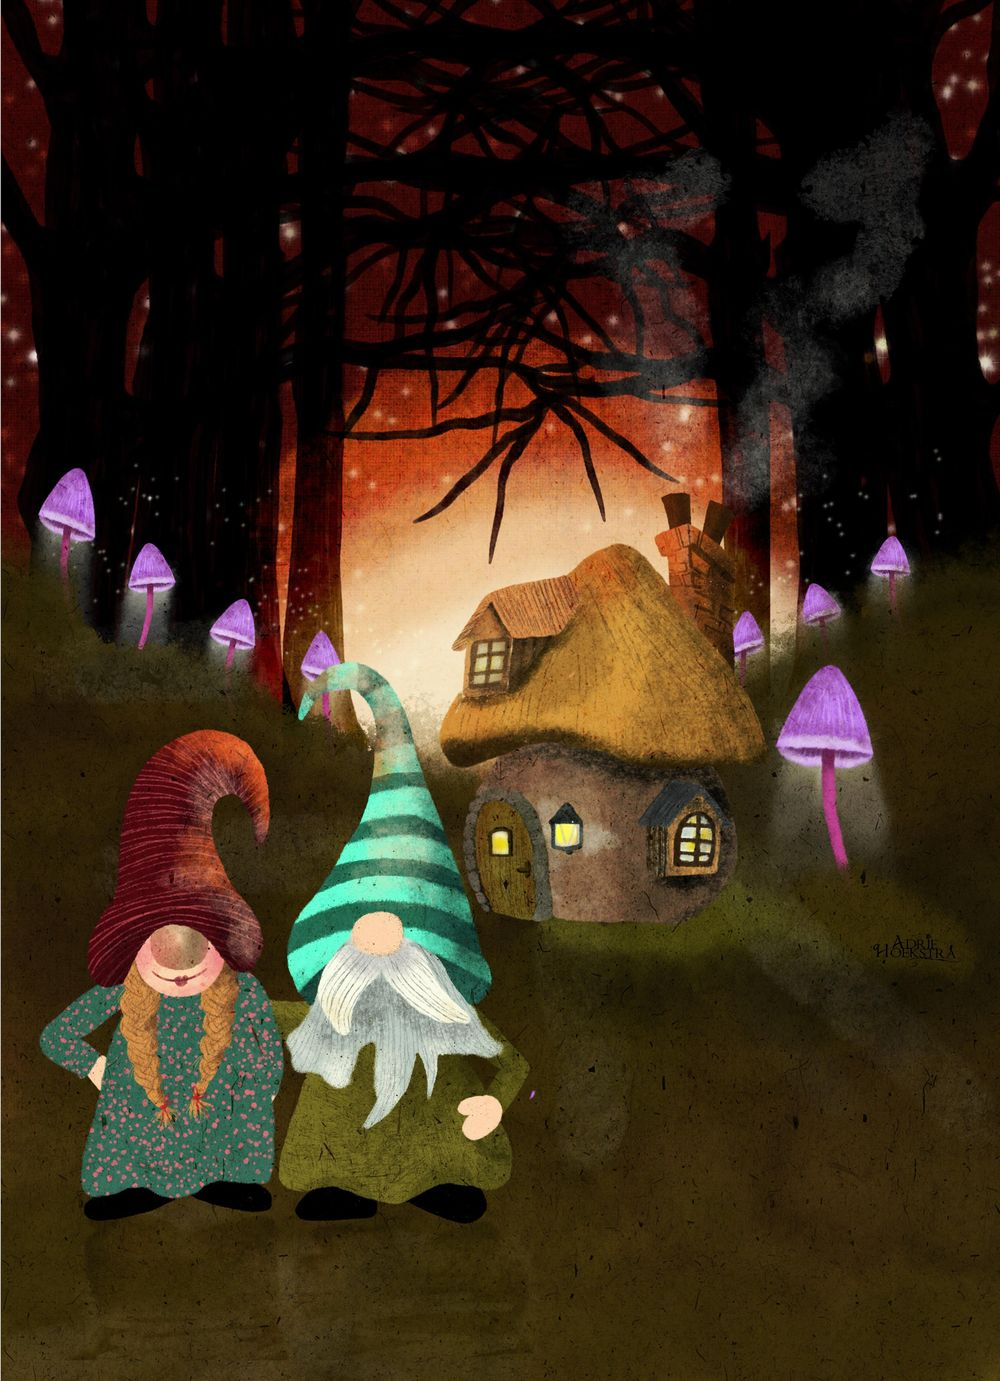 Whimsical scenes in procreate - image 2 - student project